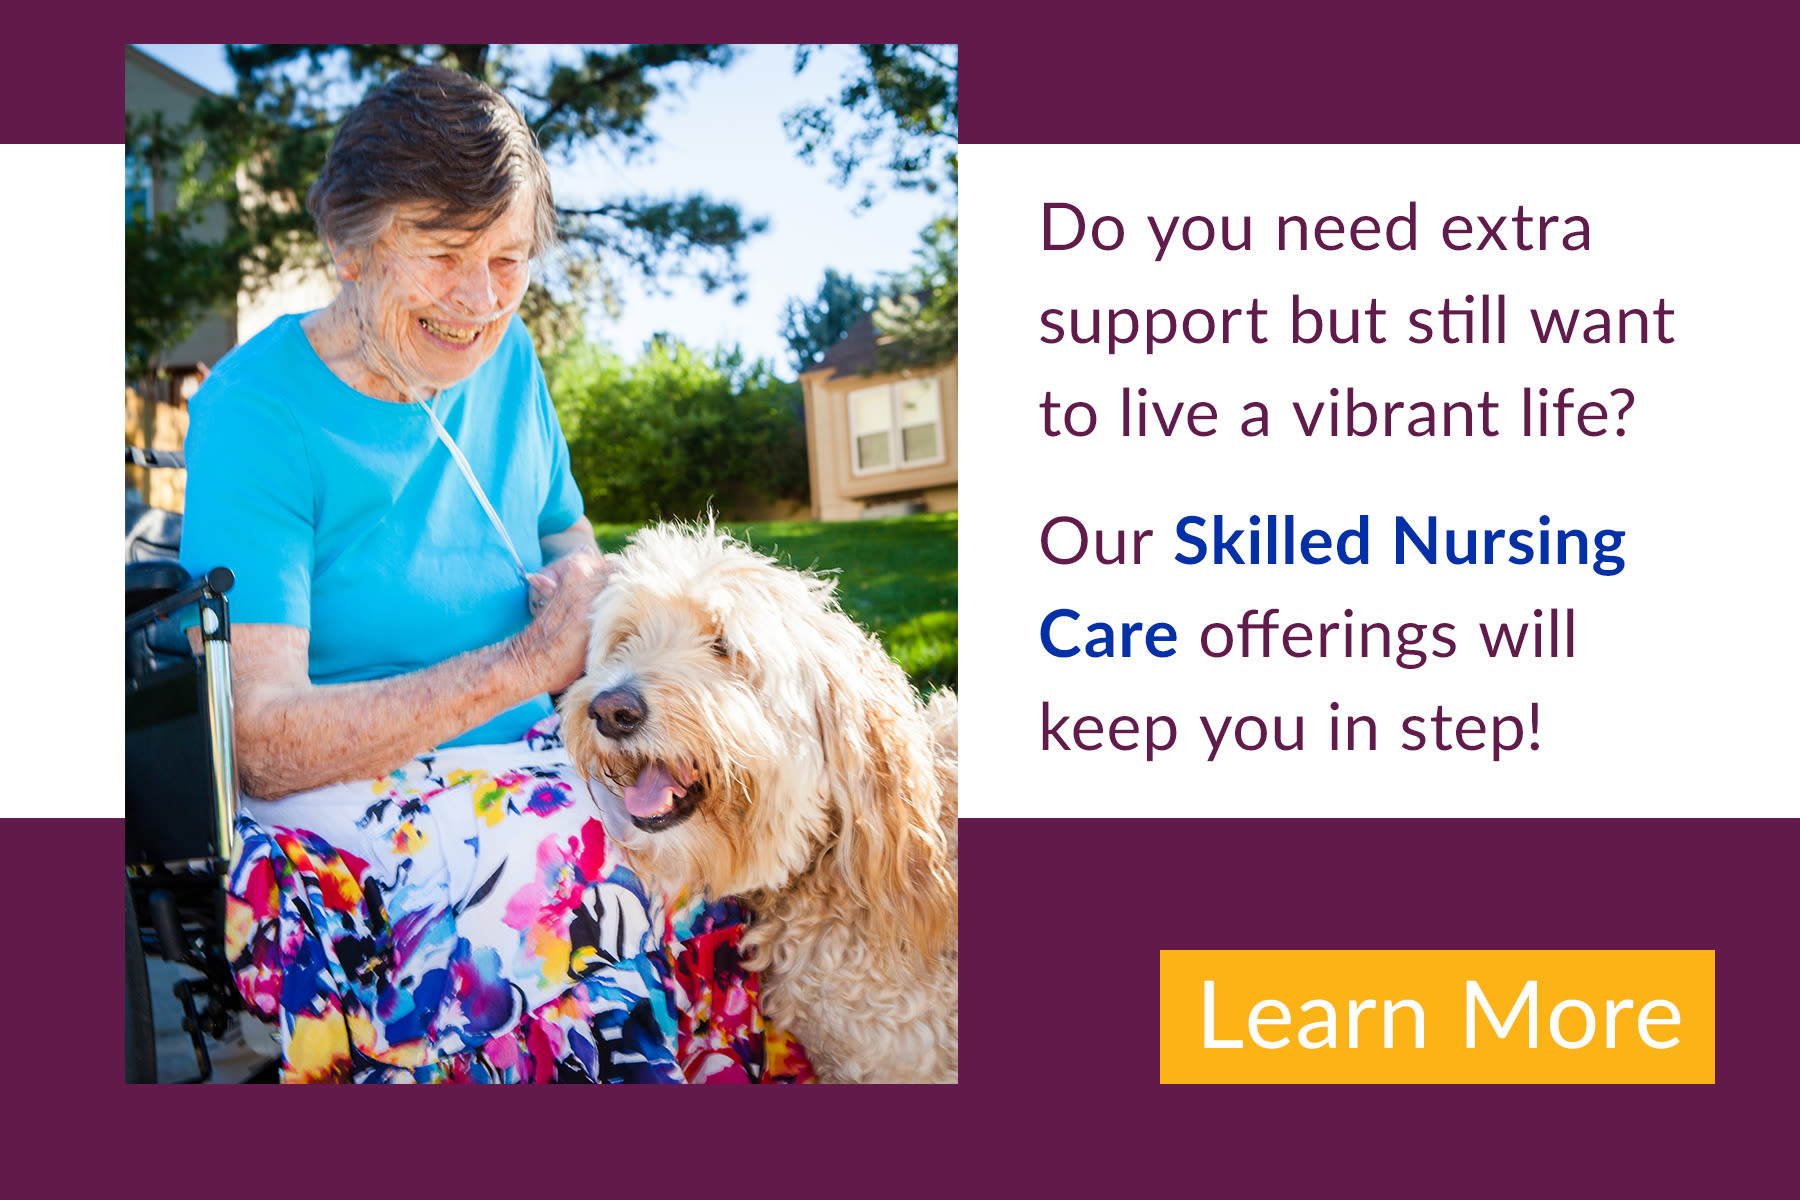 Skilled Nursing at Christian Living Communities